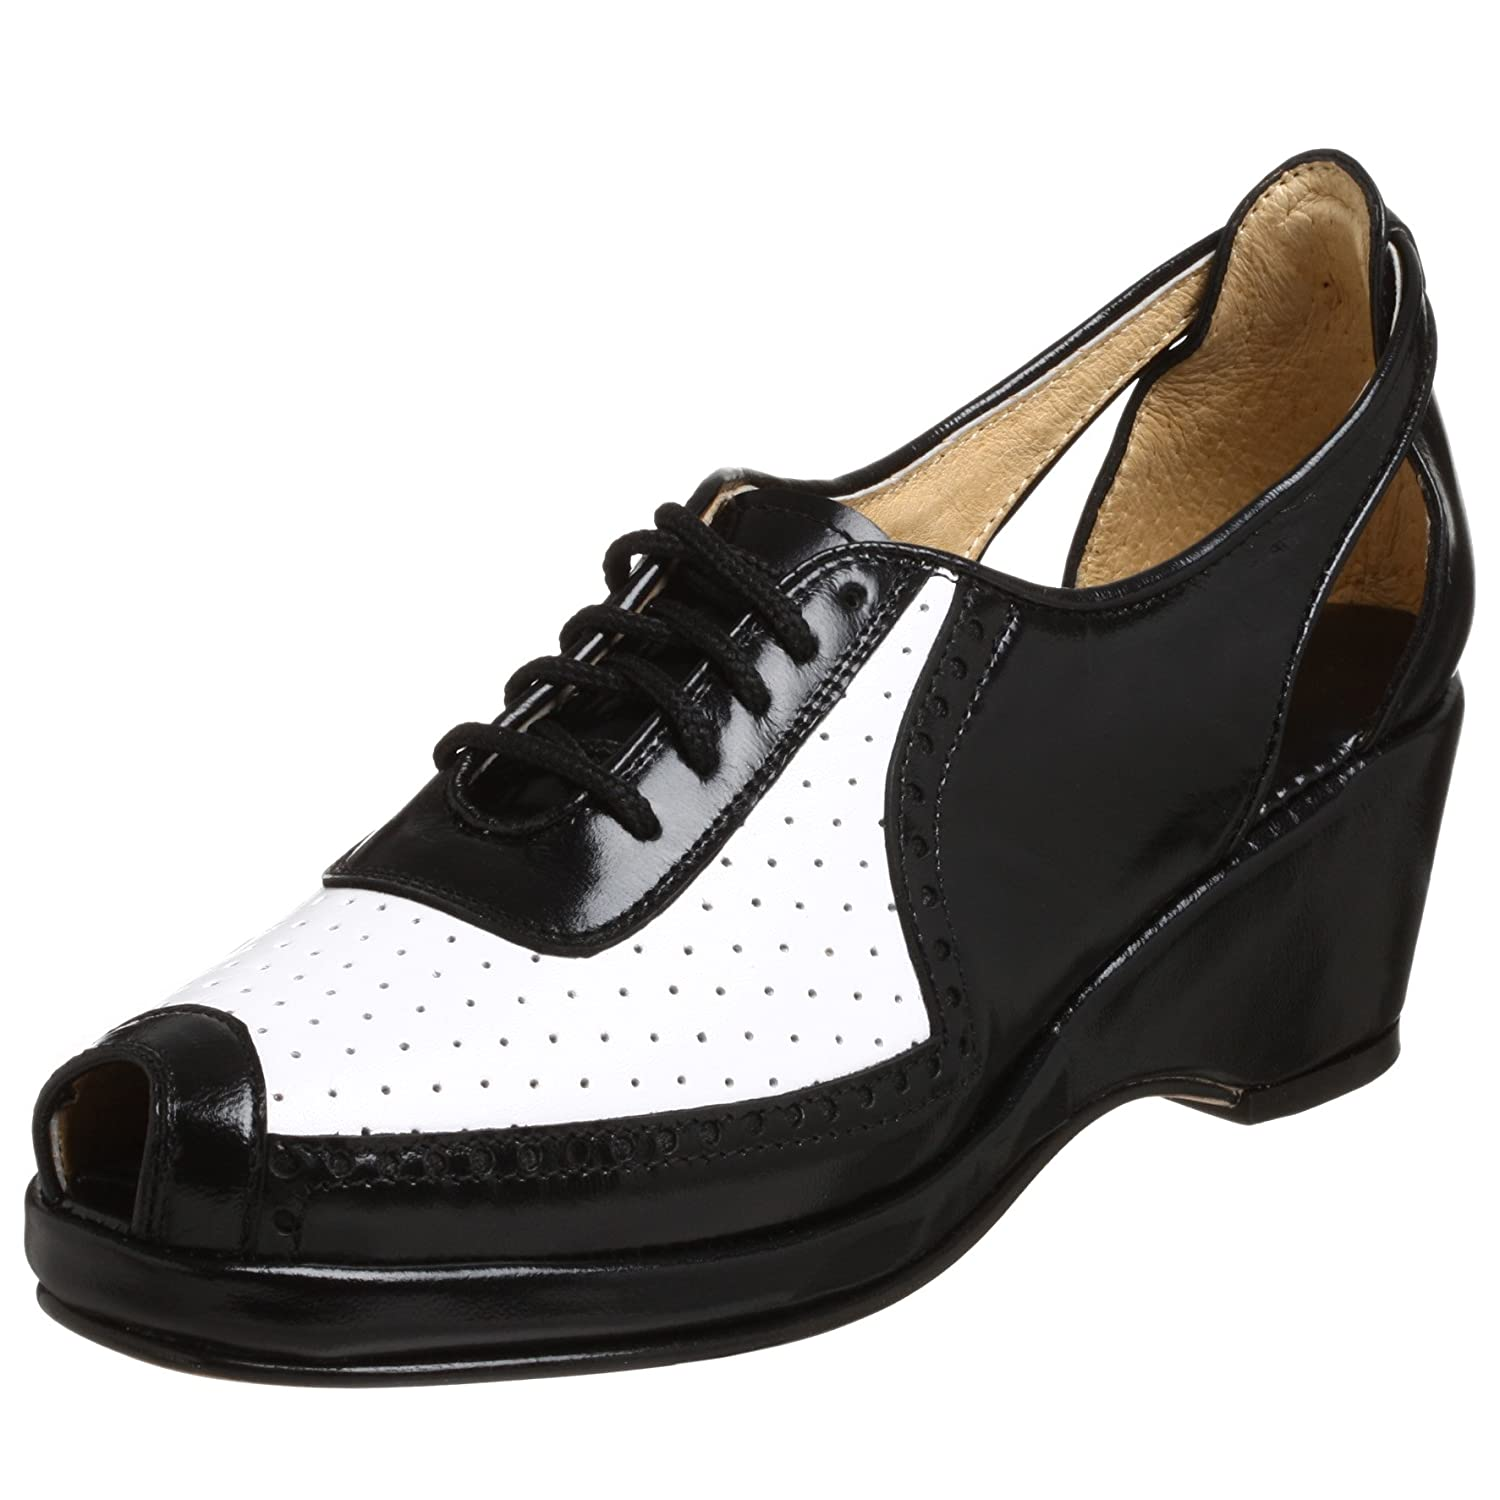 Re-Mix Vintage Women&#039;s Spectator Pump - Free Overnight Shipping &amp; Return Shipping: Endless.com from endless.com